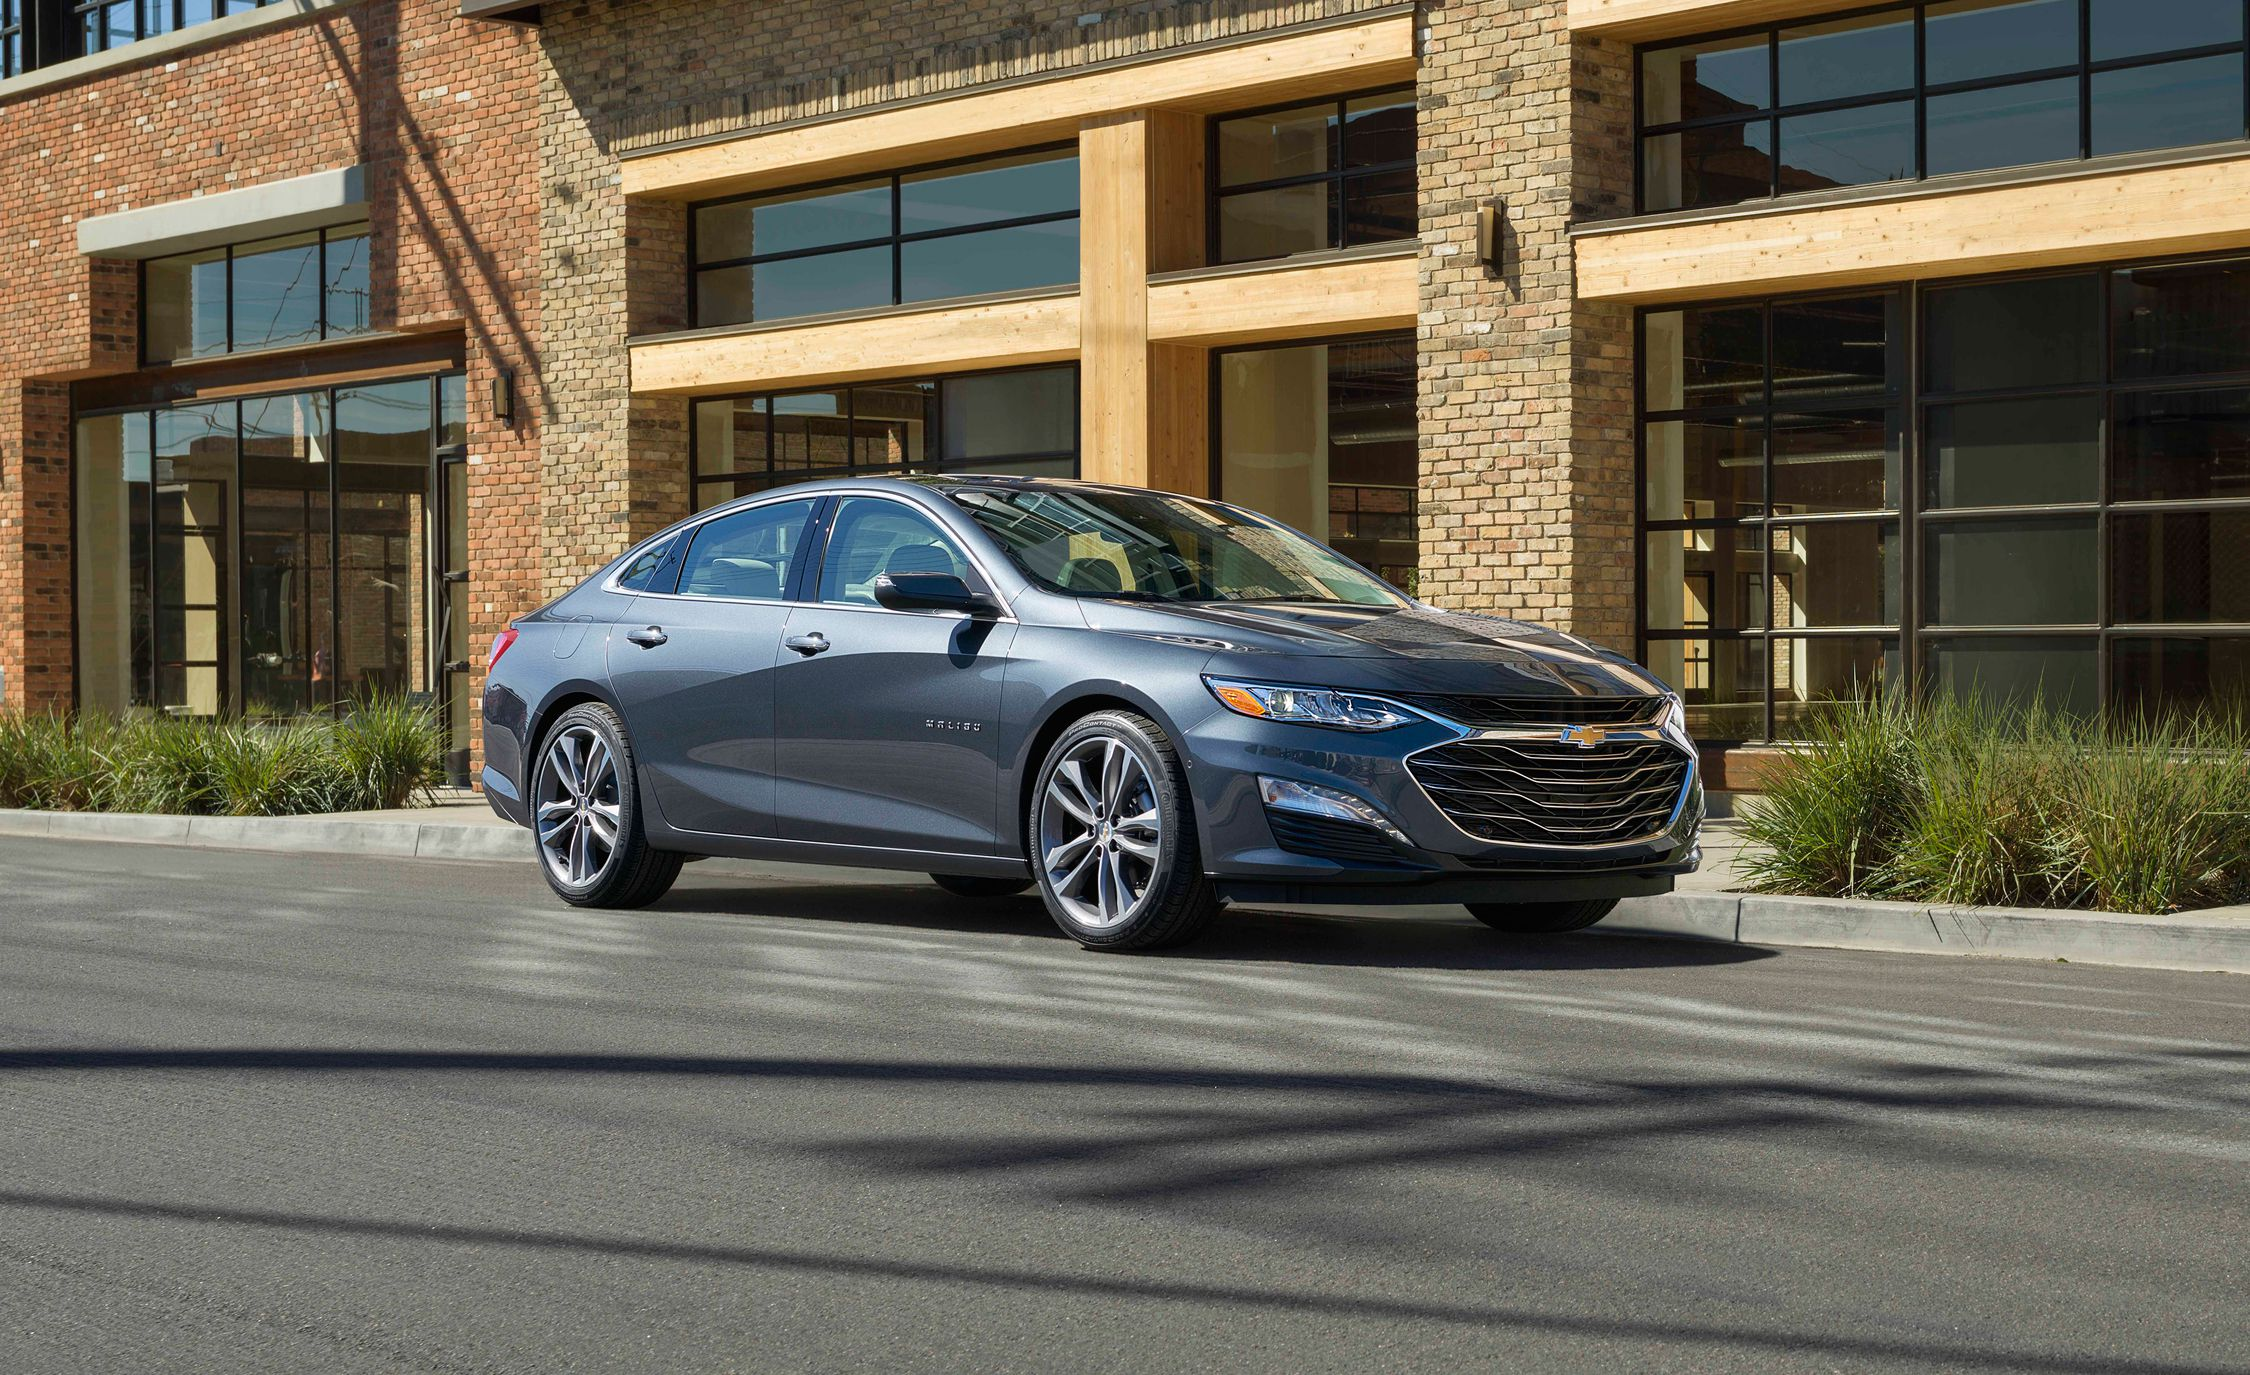 37 The Best 2019 Chevy Malibu Ss Prices